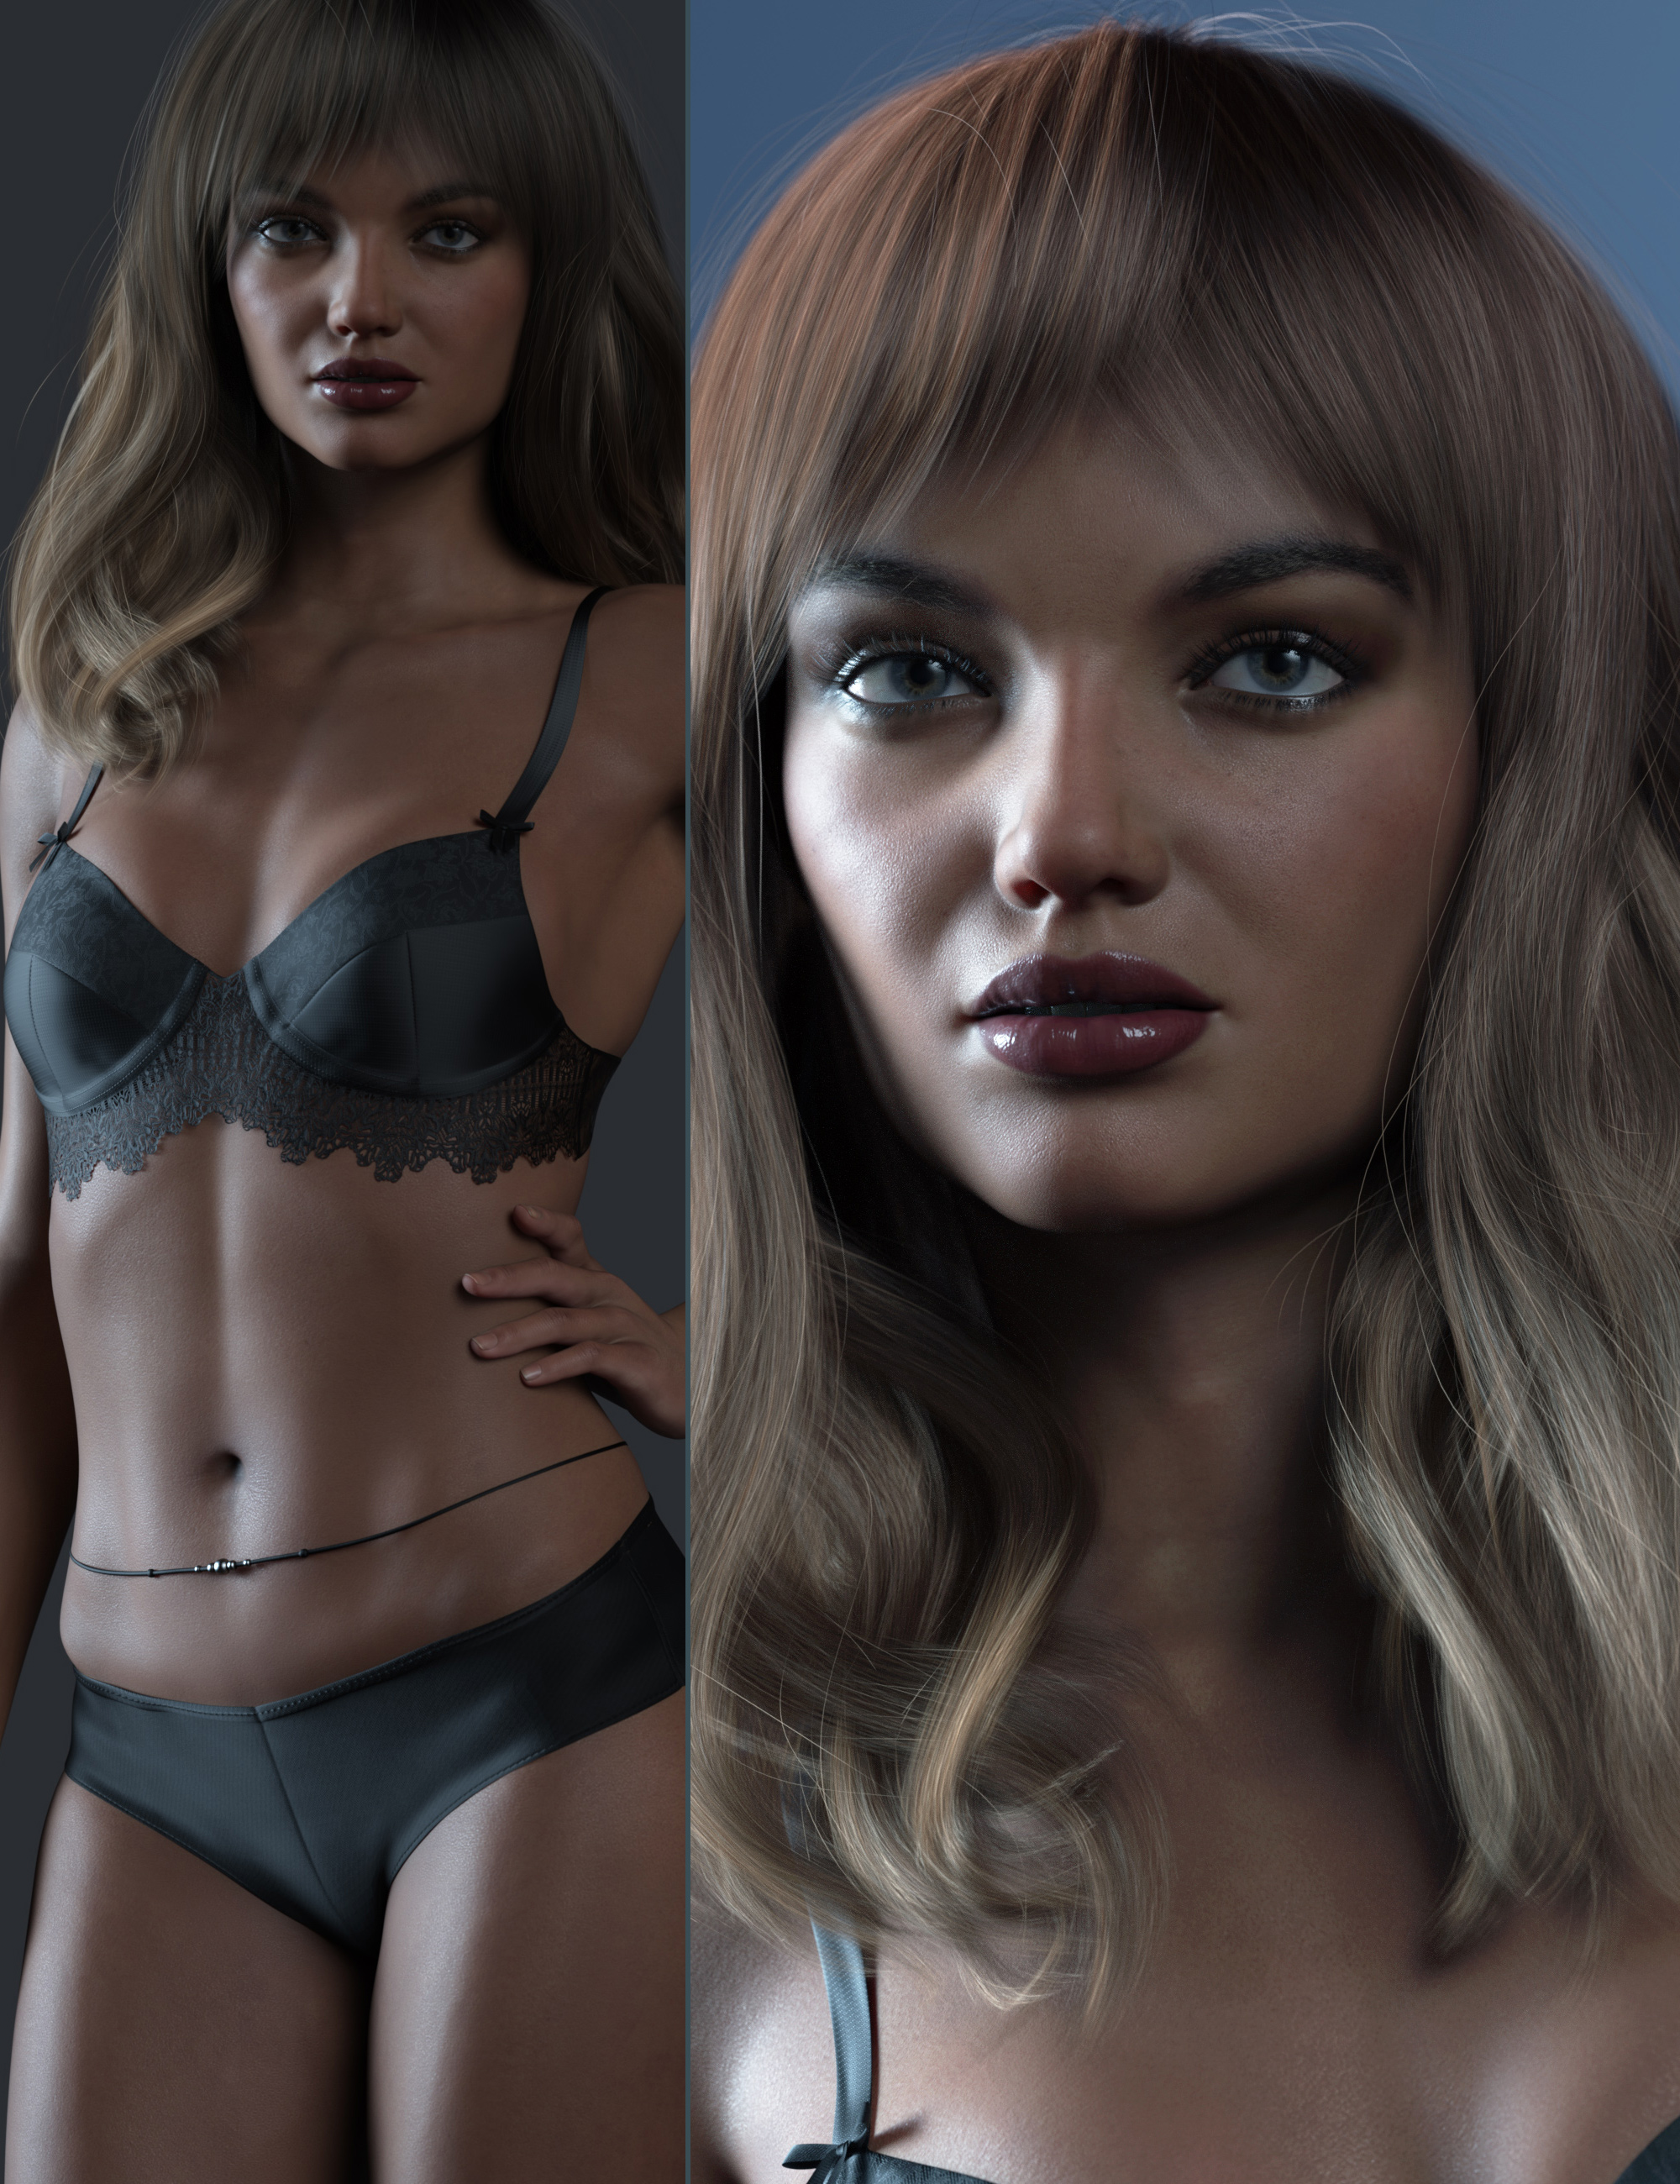 RY Inessa Character, Hair and Render Bundle by: outoftouchRaiya, 3D Models by Daz 3D